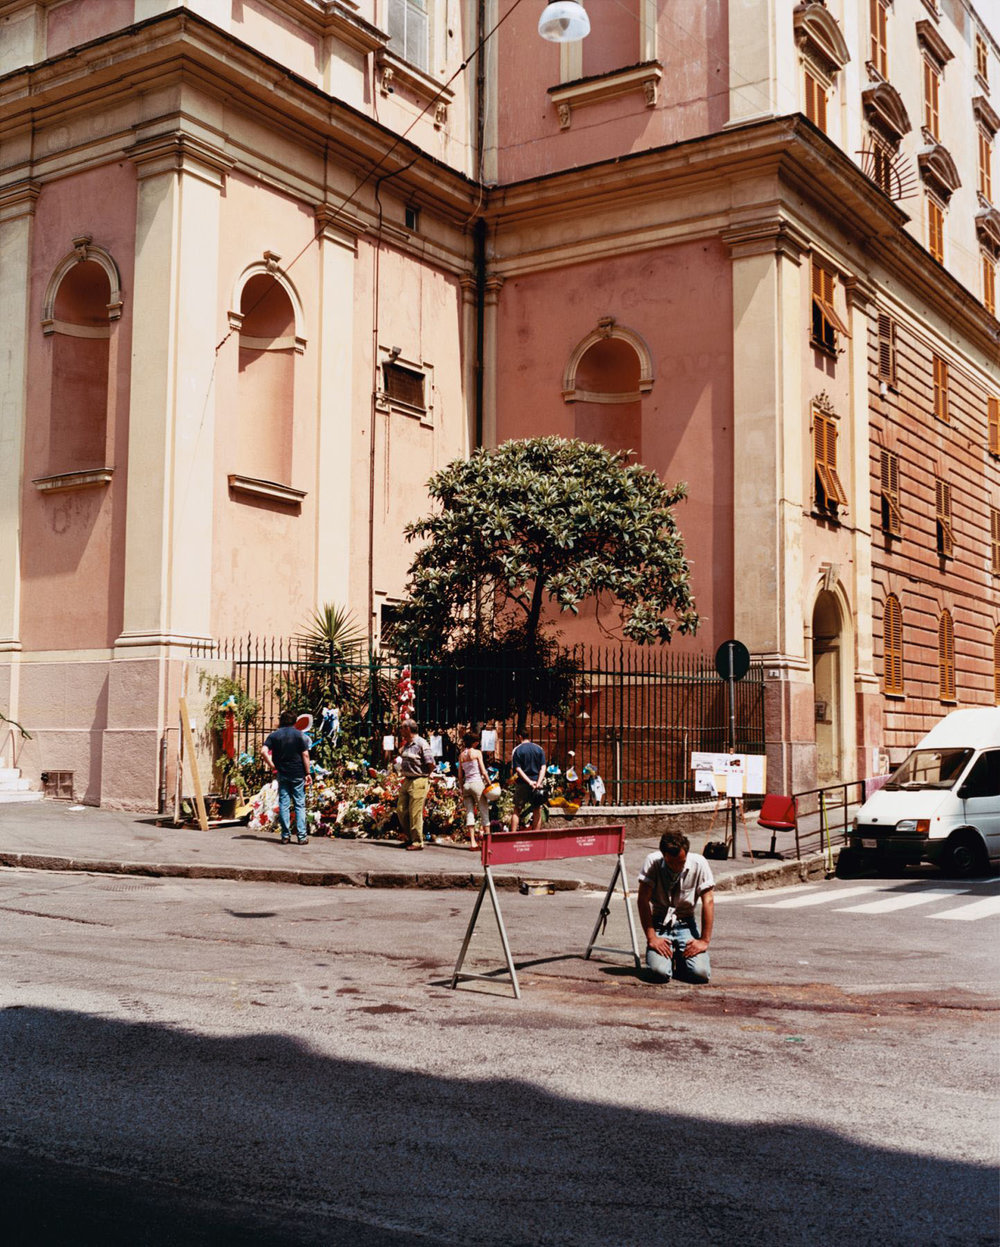 A man kneeling at the spot where Carlo Giuliani lost his life, Piazza Alimonda, Genoa, 21 July 2001